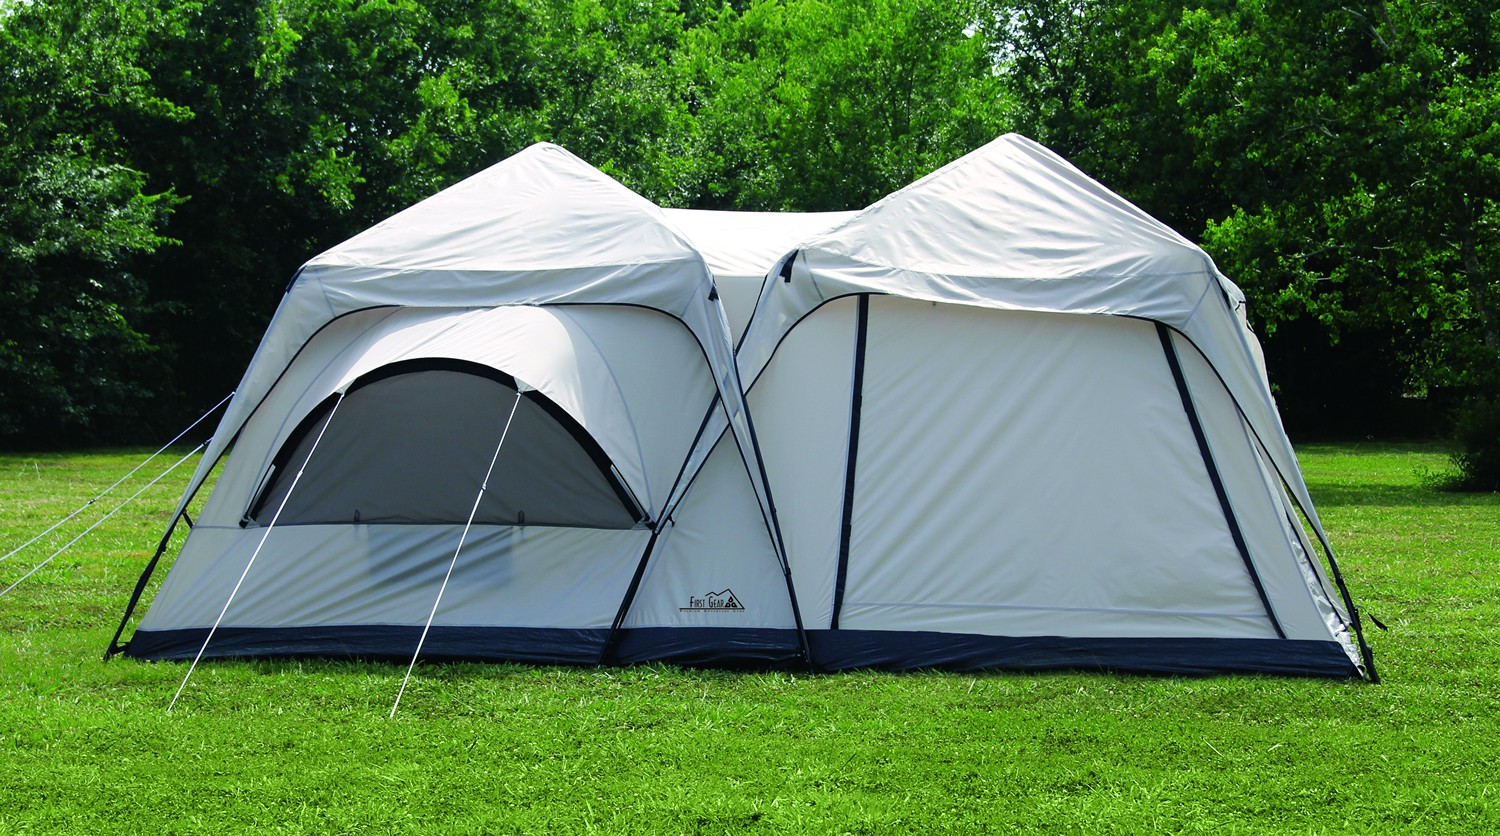 Twin Peaks Two-Room Cabin Dome Tent : two room tents - memphite.com